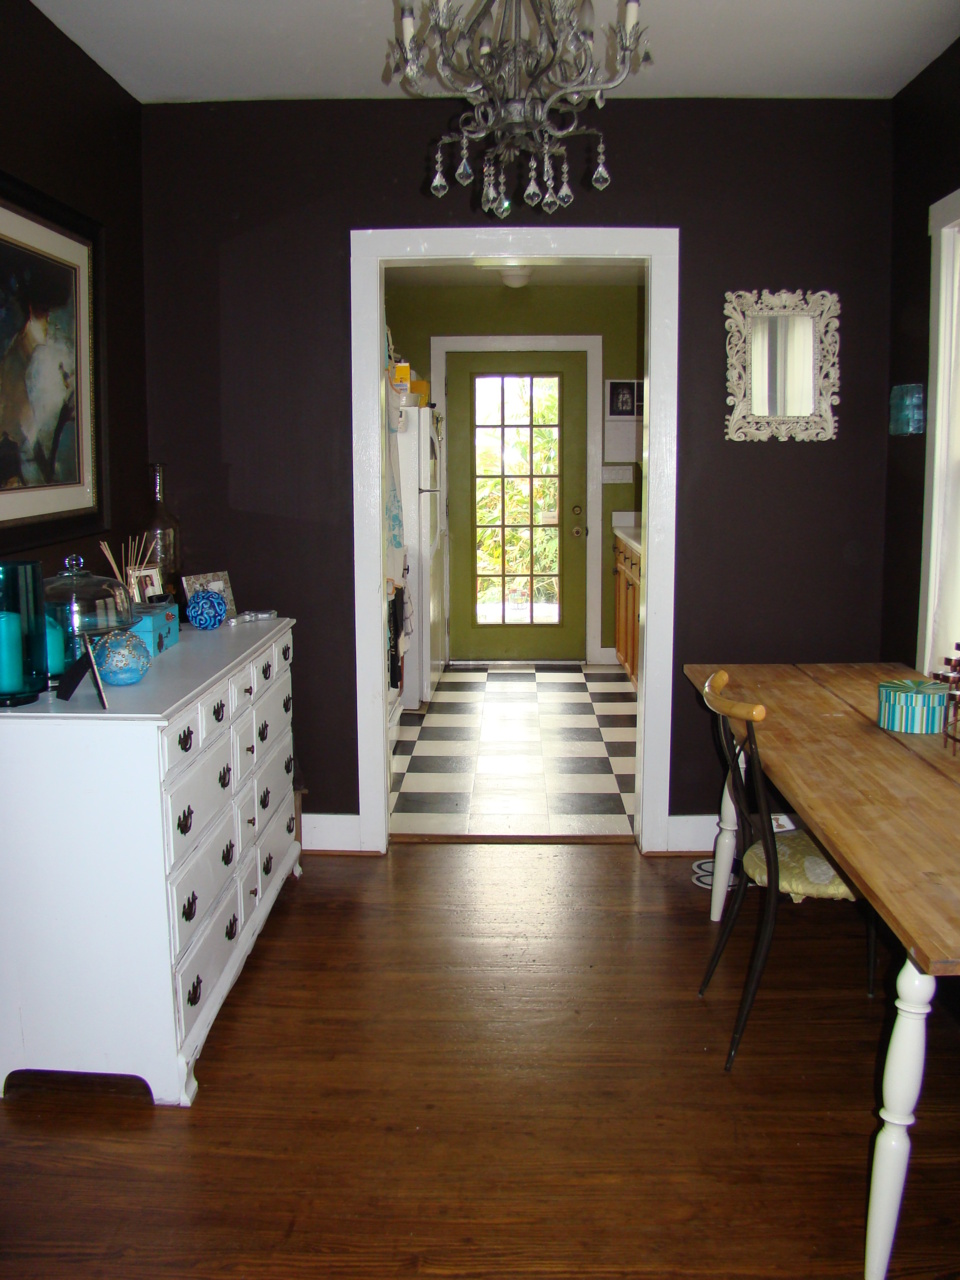 This was our tiny shotgun dining room. I painted it a dark brown and LOVE it. It was like having velvet on the walls. I also repainted a vintage dresser I found and used it as a buffet.